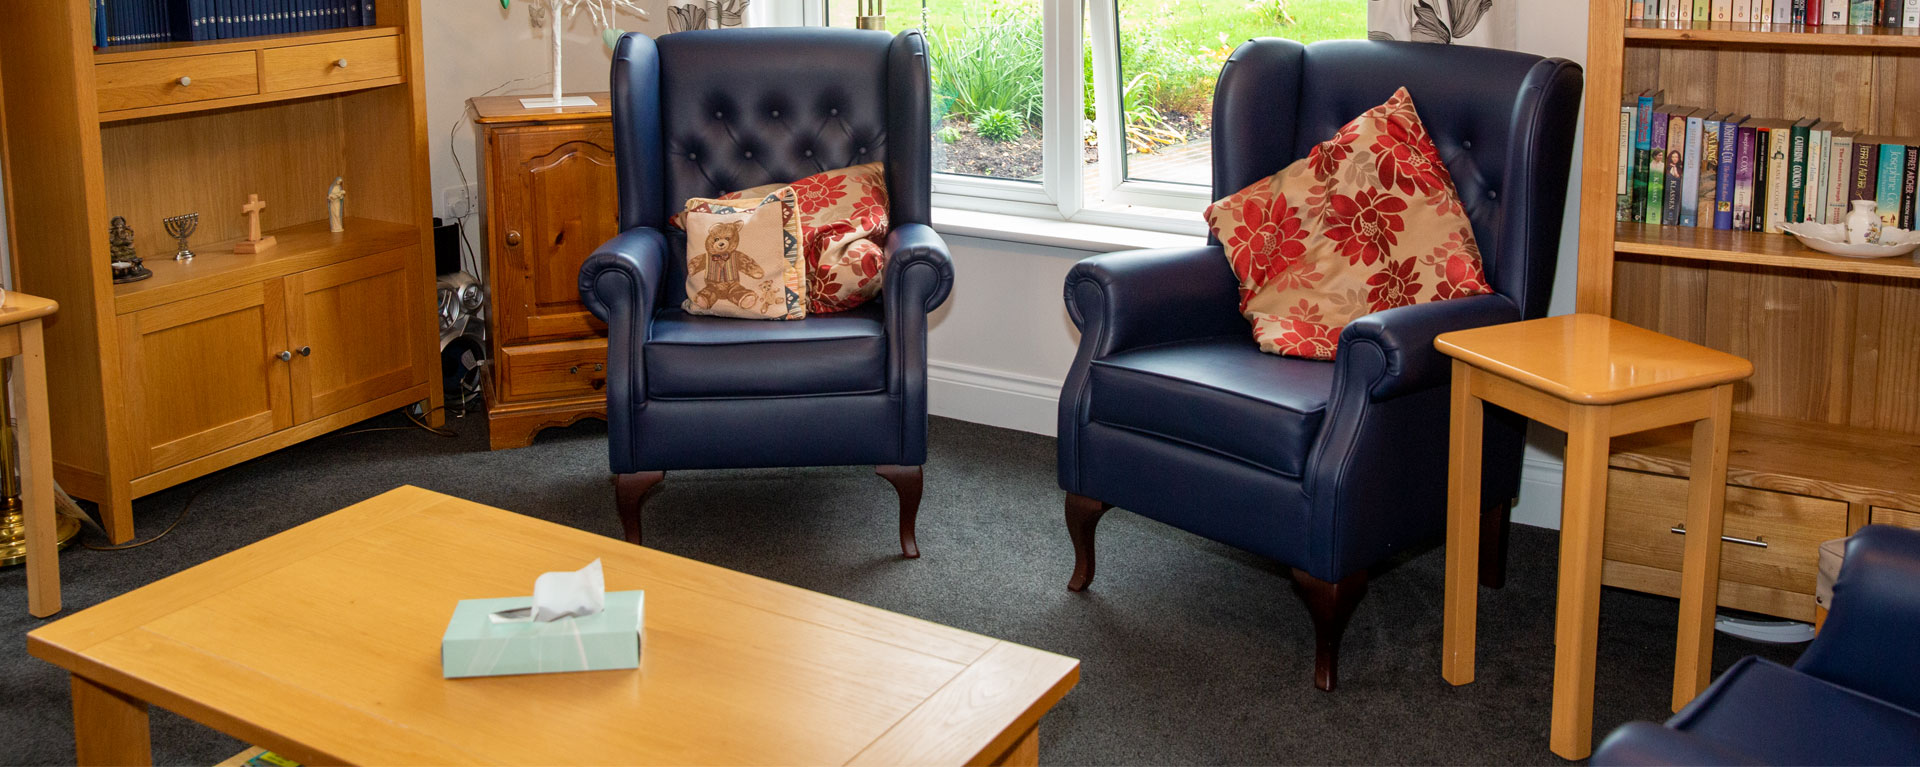 View of the comfy chairs in the care home library